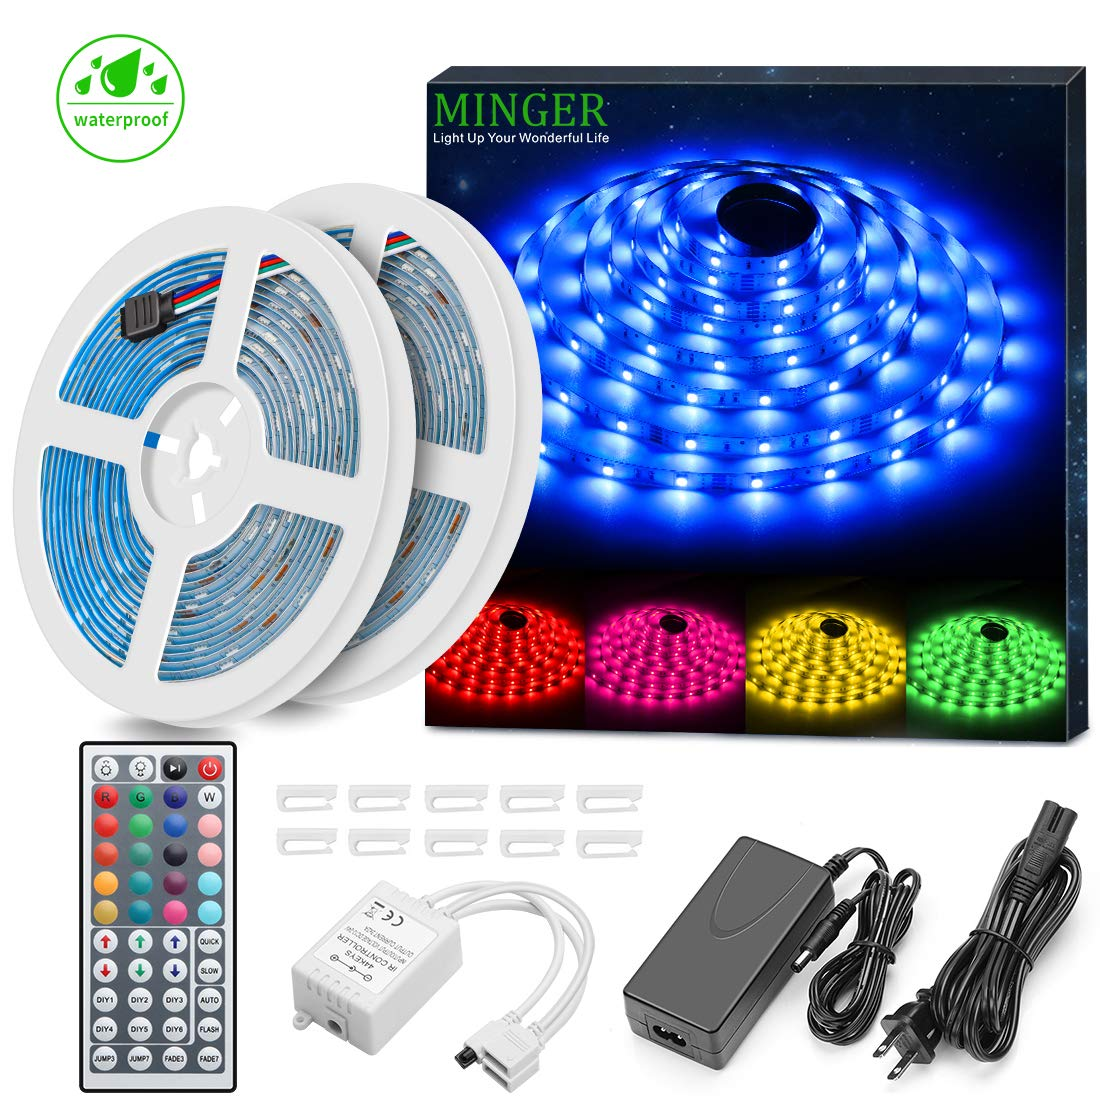 Minger LED Strip Lights Kit, Waterproof 32.8ft 5050 RGB 300led Strips Lighting Flexible Color Changing Rope Lights with 44 Key IR Remote Ideal for Room, Home, Kitchen, Party, DC 12V/3A UL Listed by MINGER